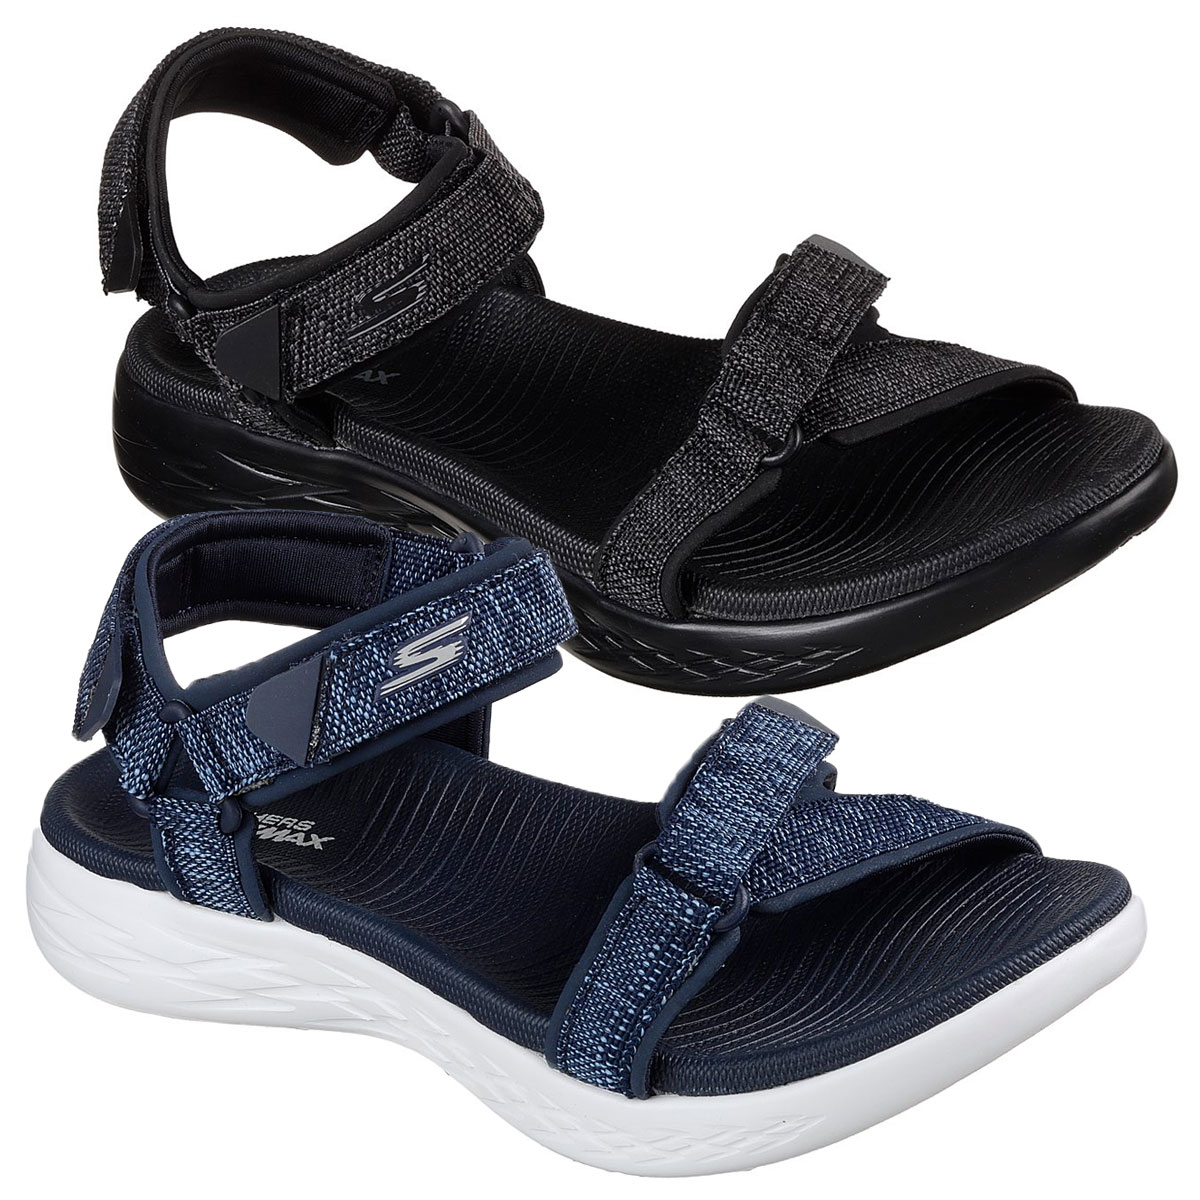 Details about Skechers Womens On The Go 600 Radiant Sandals